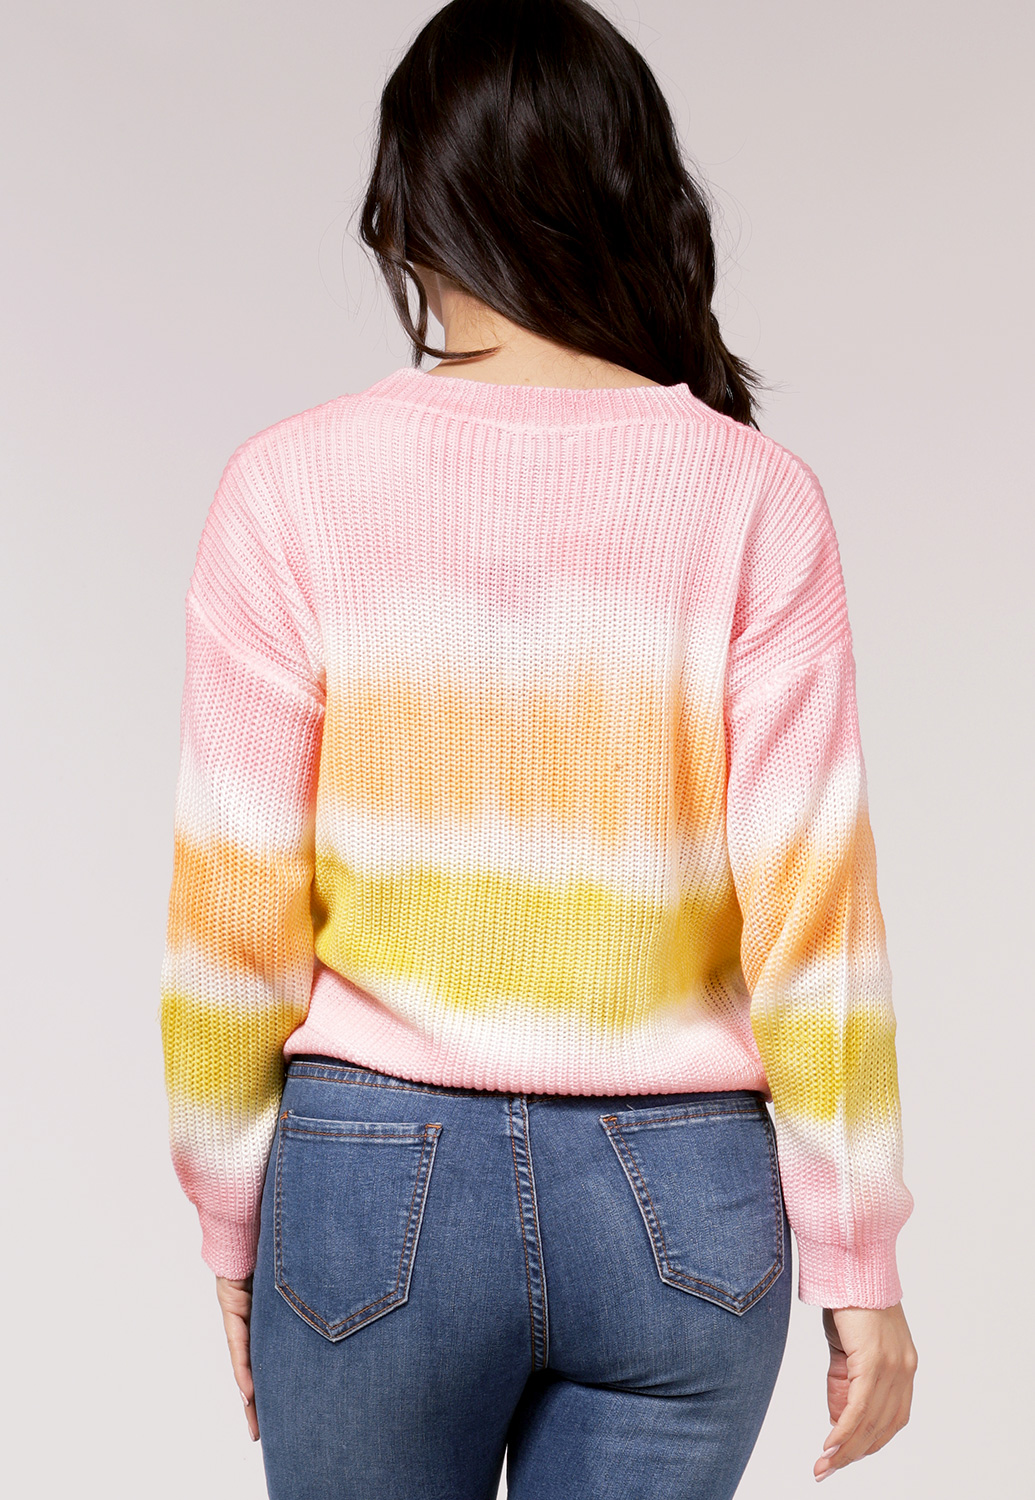 Cotton Candy Color Sweater